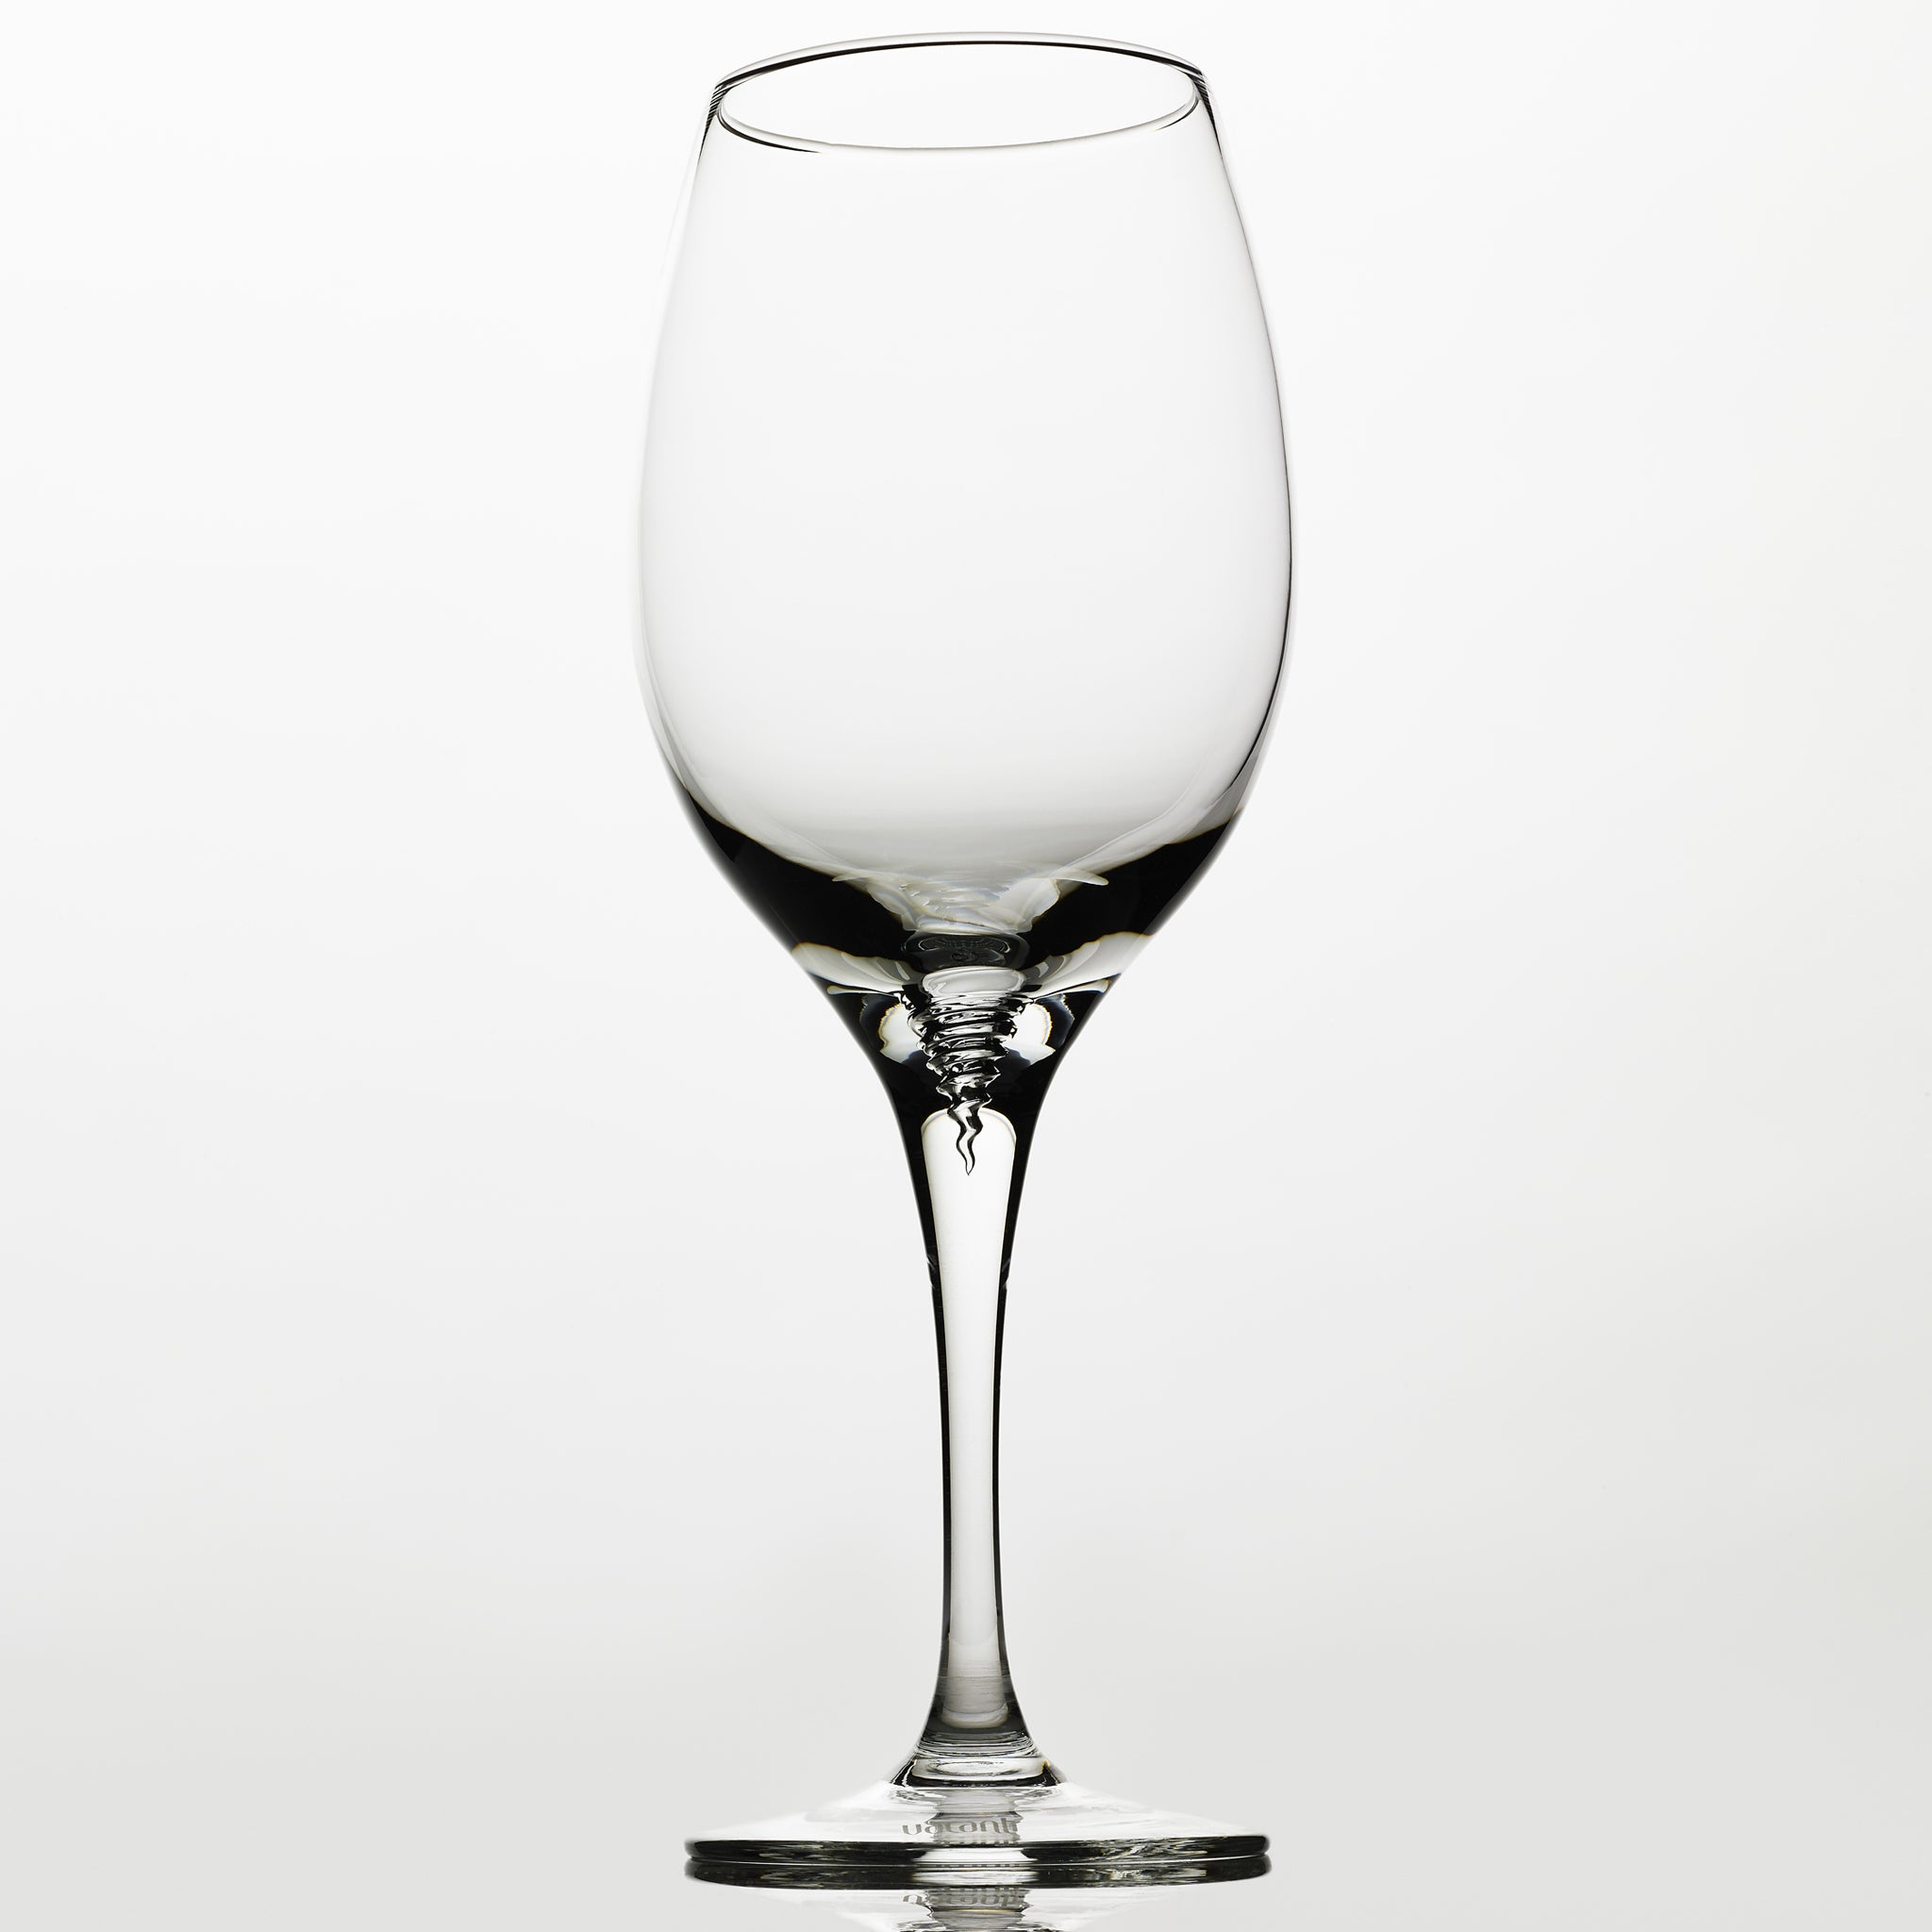 The Original Spirale Wine Glass